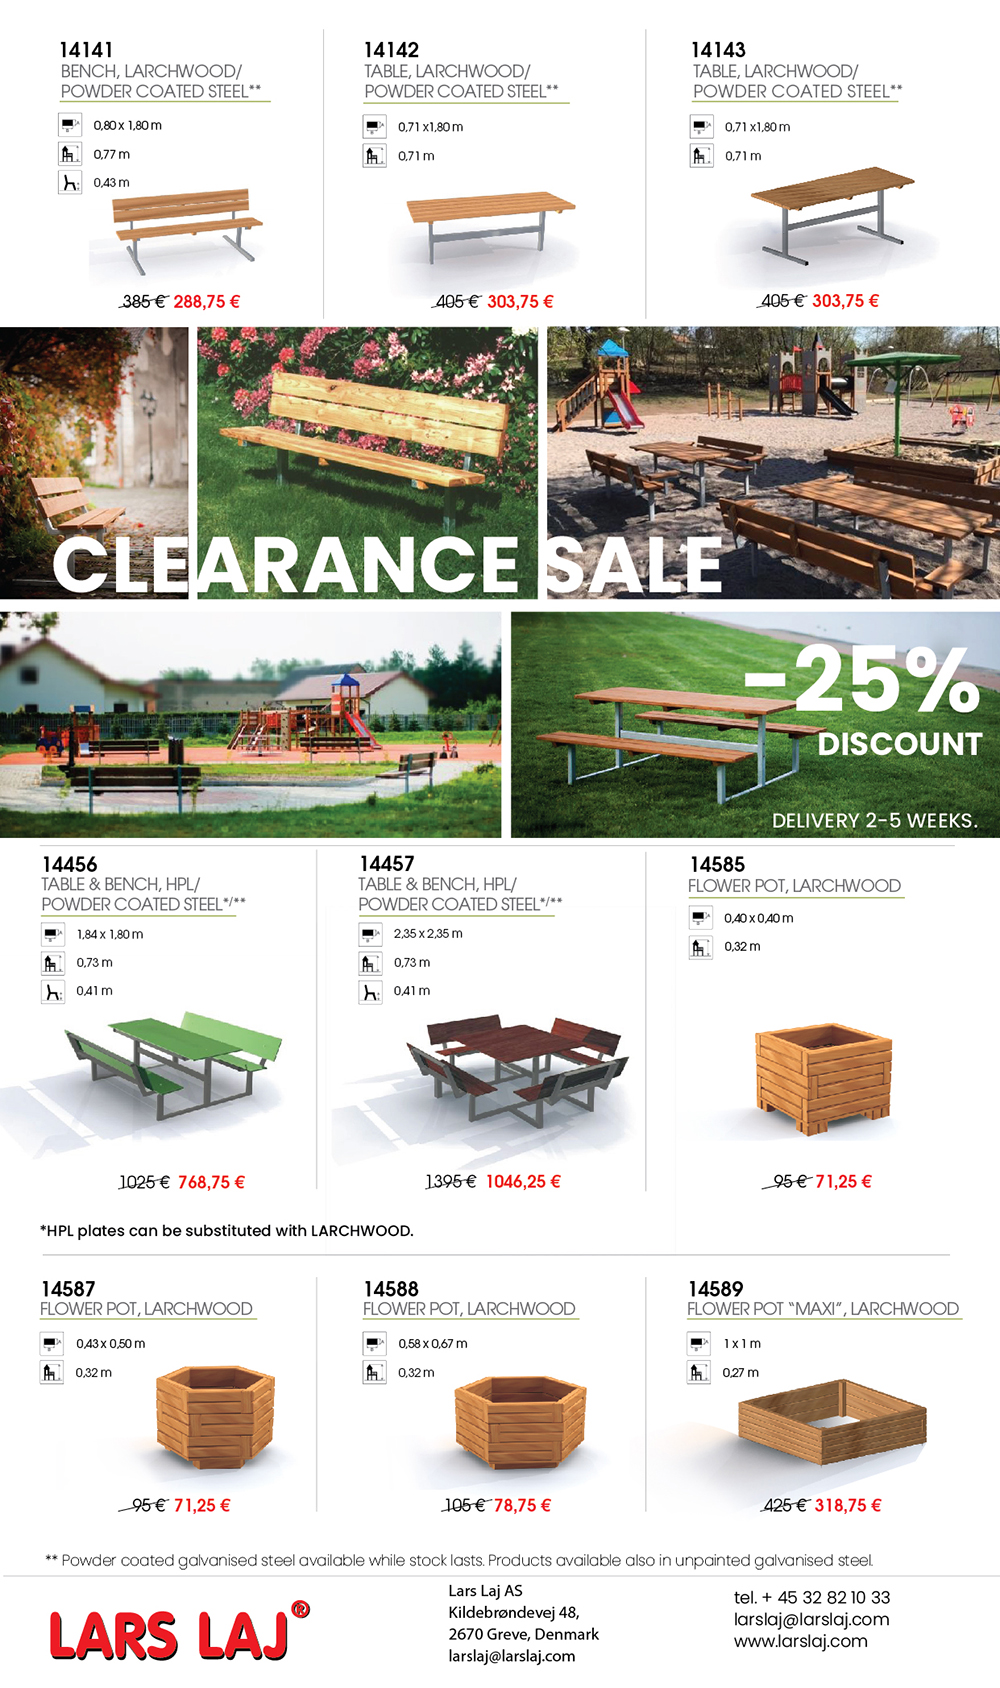 Special offer for larch and HPL benches and tables